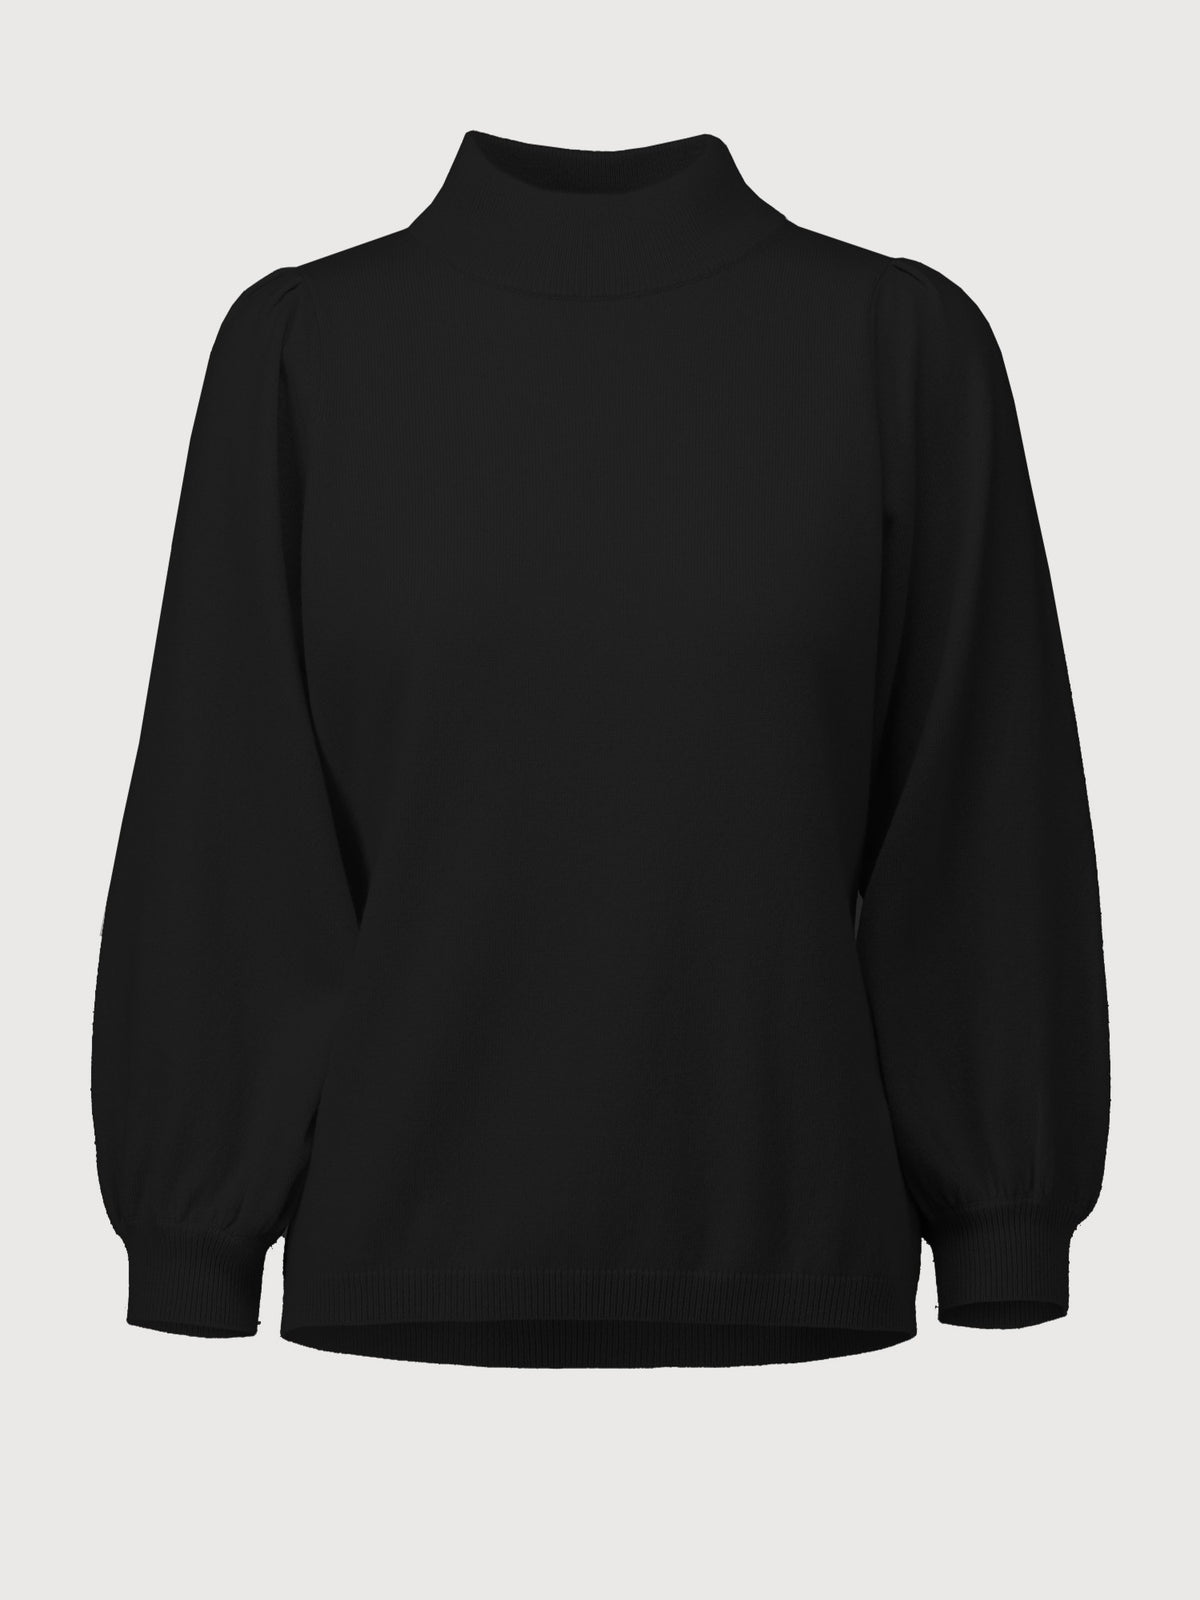 High neck Sweater | Black